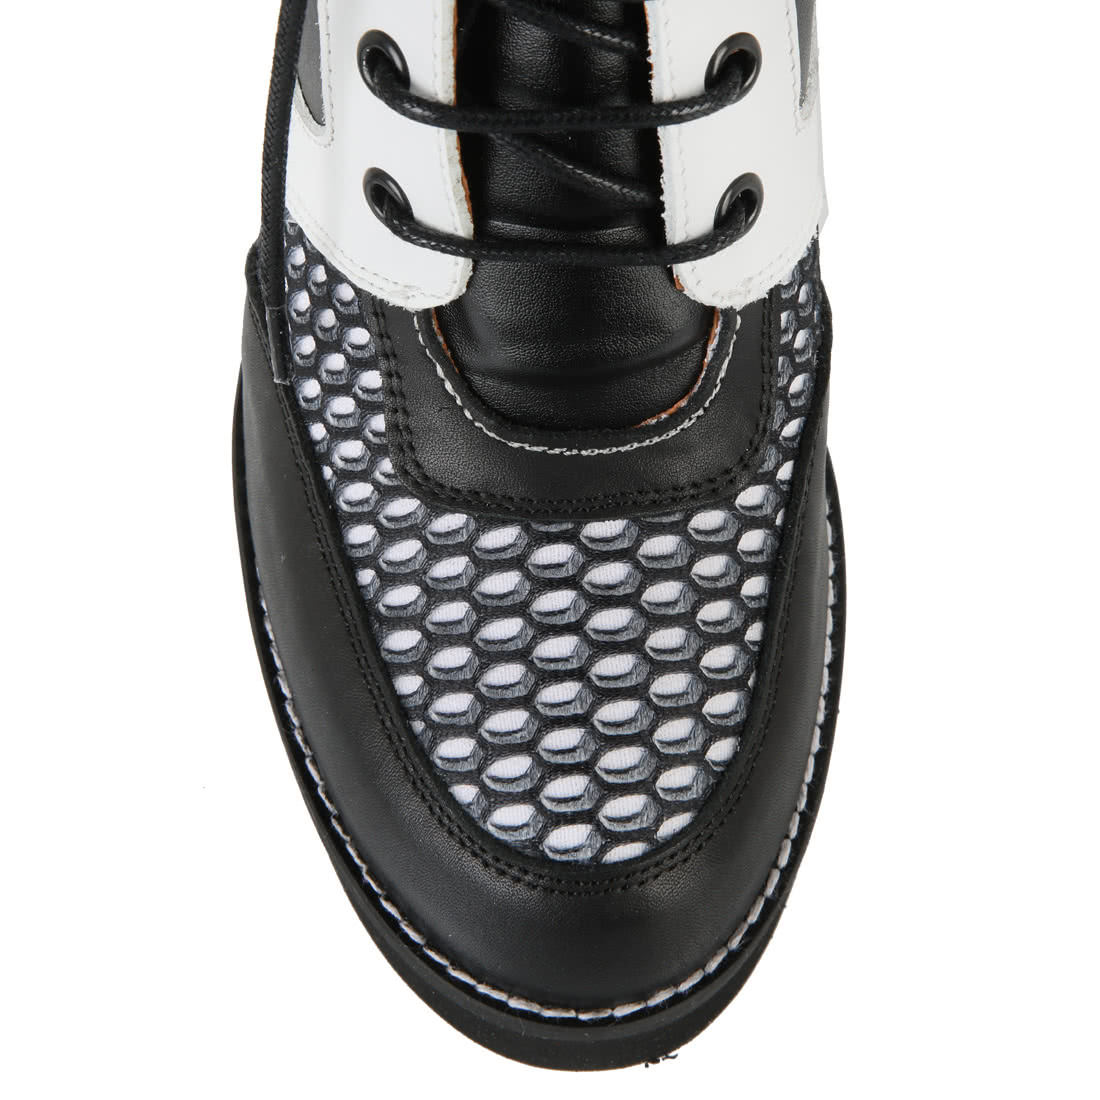 Buffalo Black Wedge Ankle Boots In Netted Look Buy Online